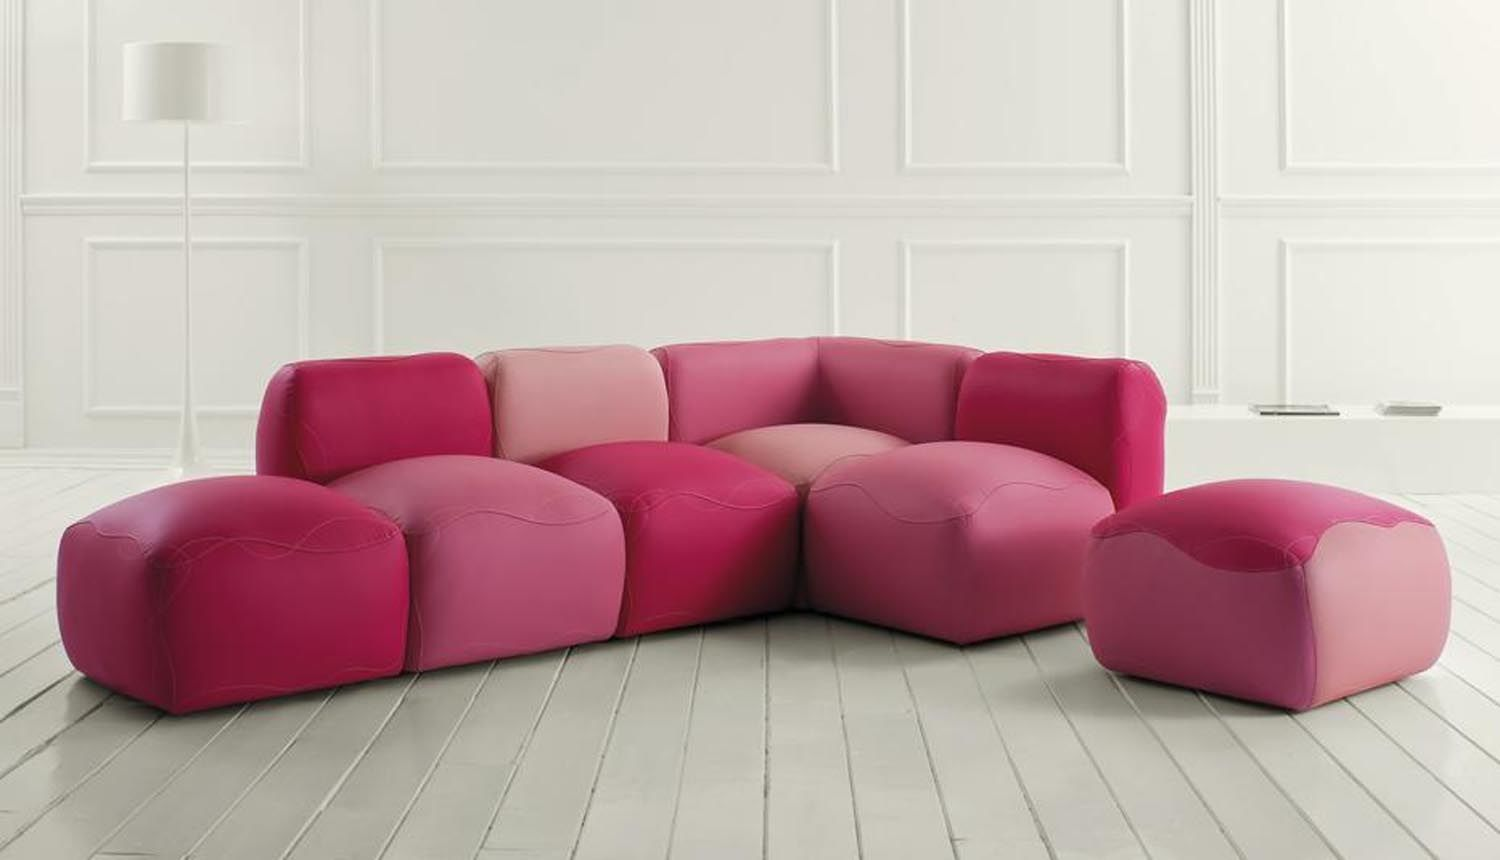 lovely living room sofa sets architecture-Fantastic Living Room sofa Sets Ideas